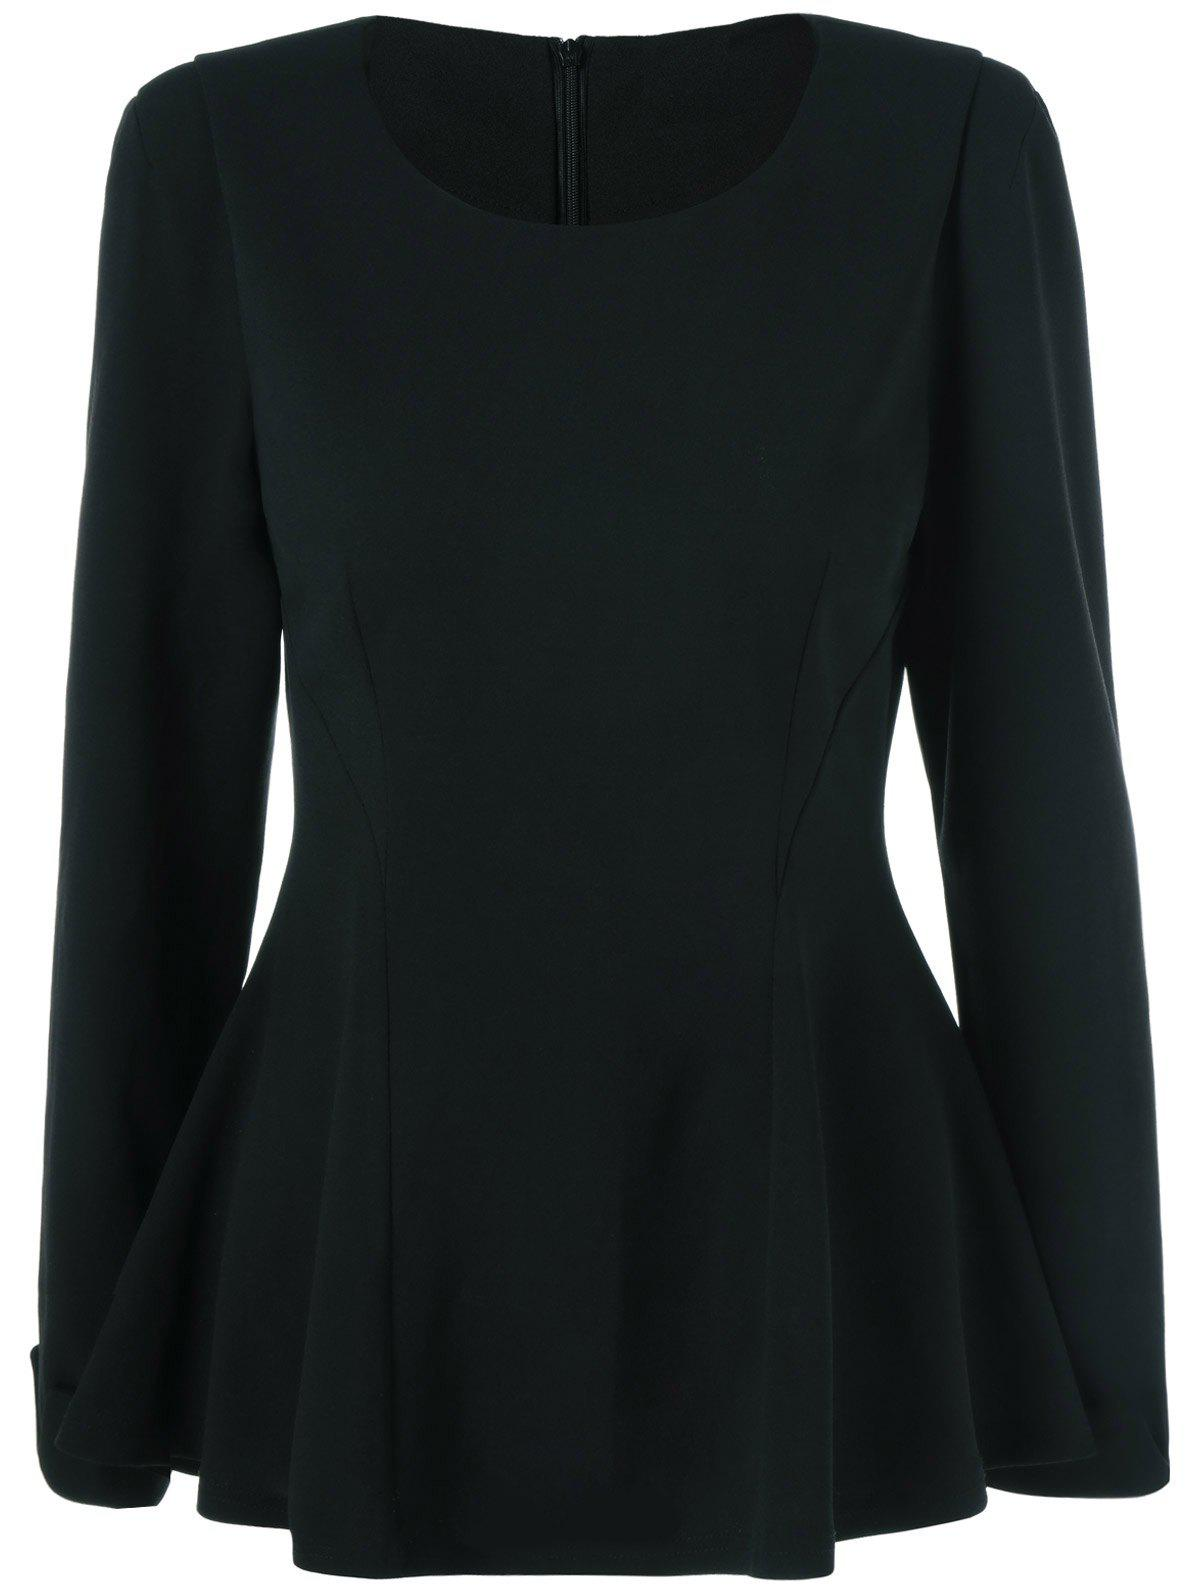 Cuffed Sleeve Peplum Blouse - BLACK XL